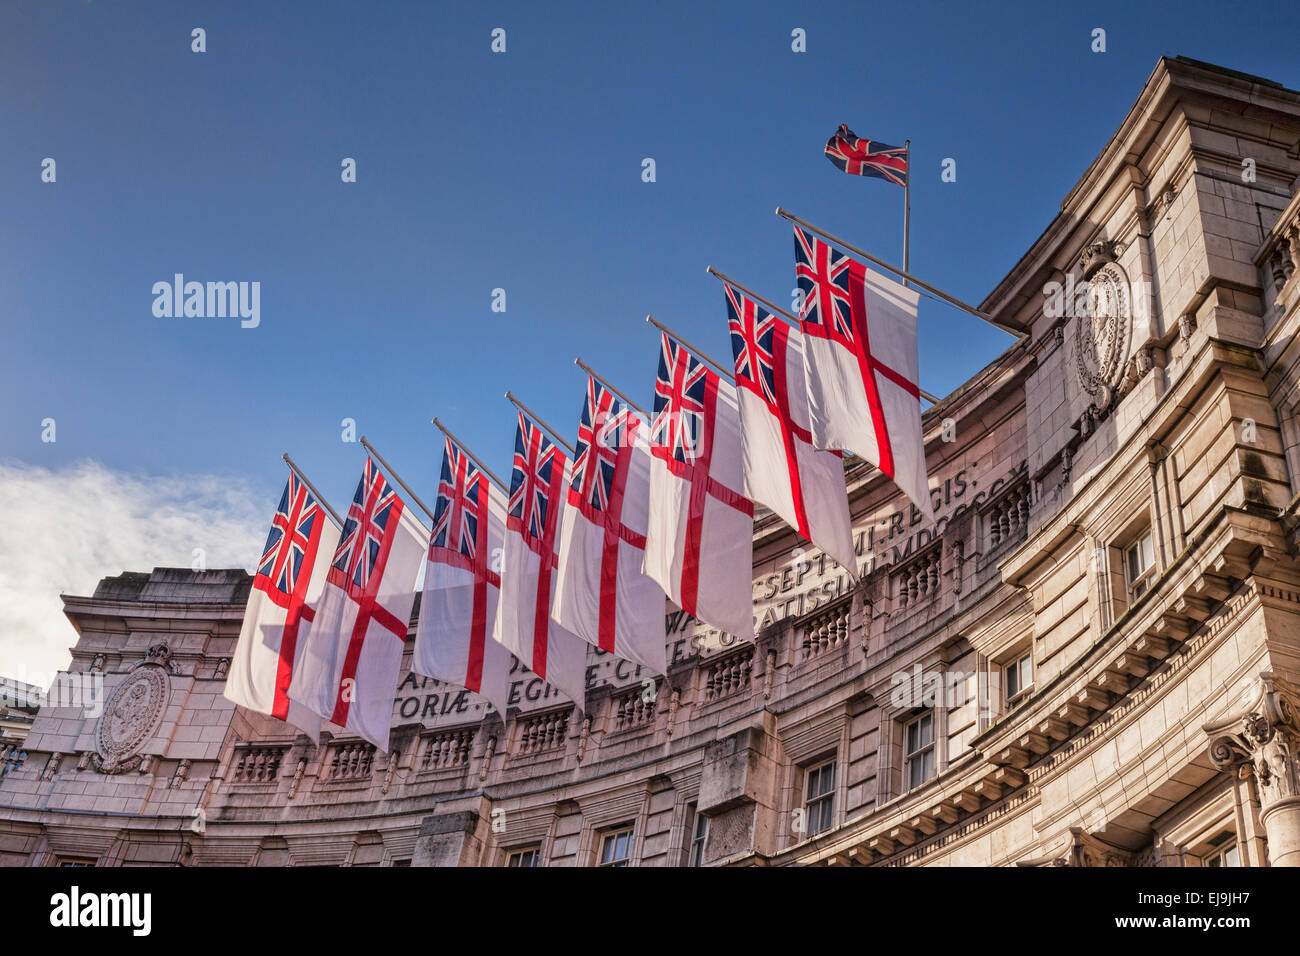 Admiralty Arch flying White Ensigns, the flag of the Royal Navy. - Stock Image